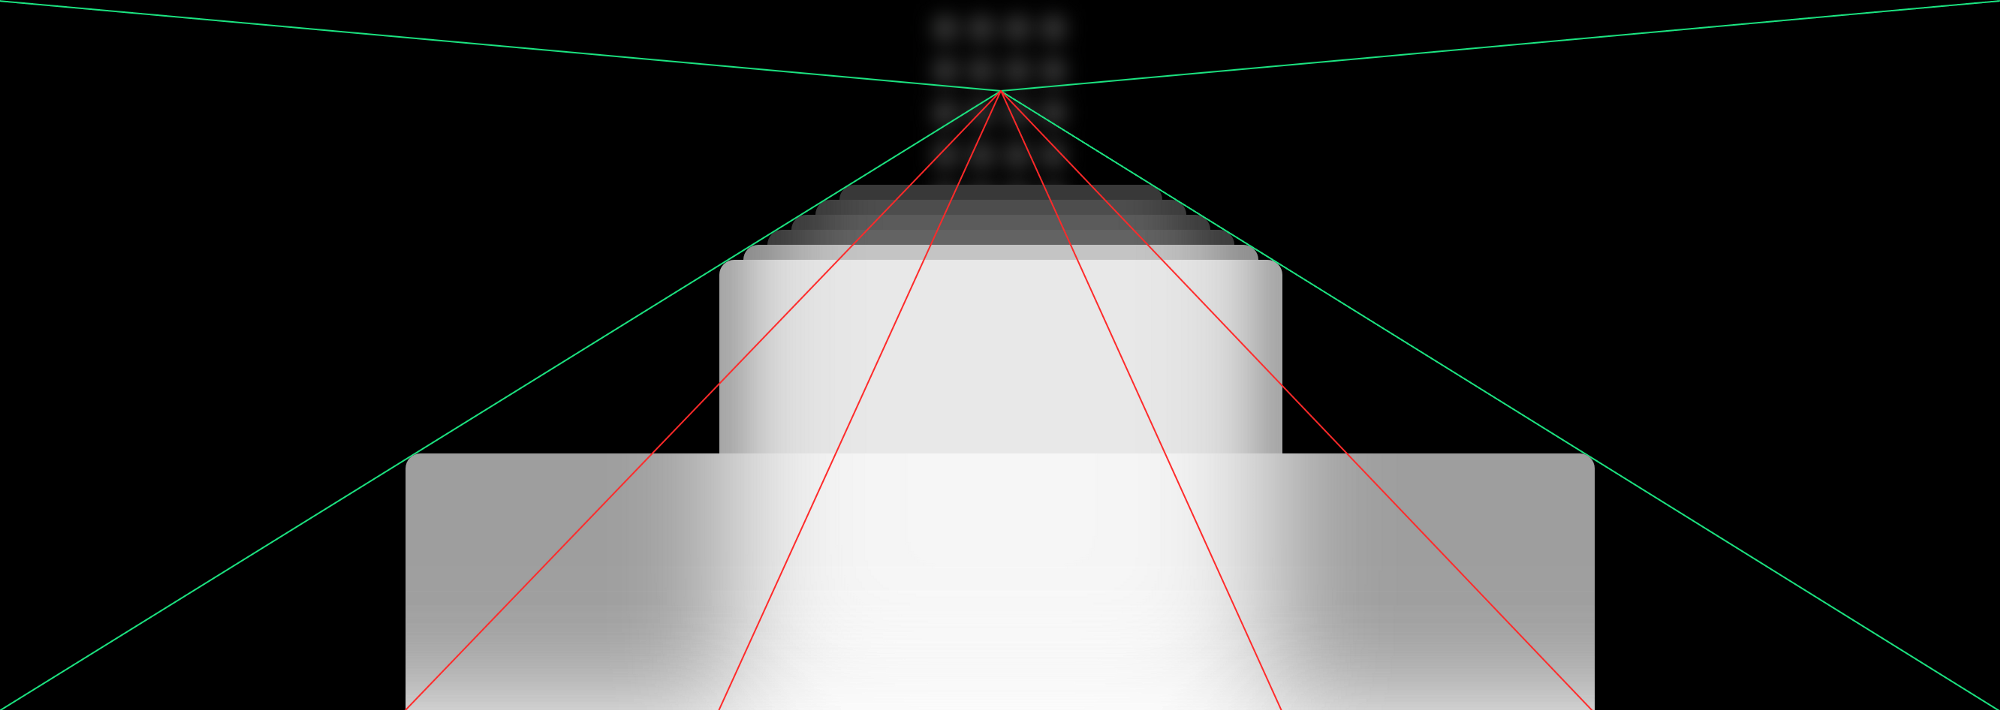 Cover Image: 3D view of iPhone's card stack with one-point perspective lines